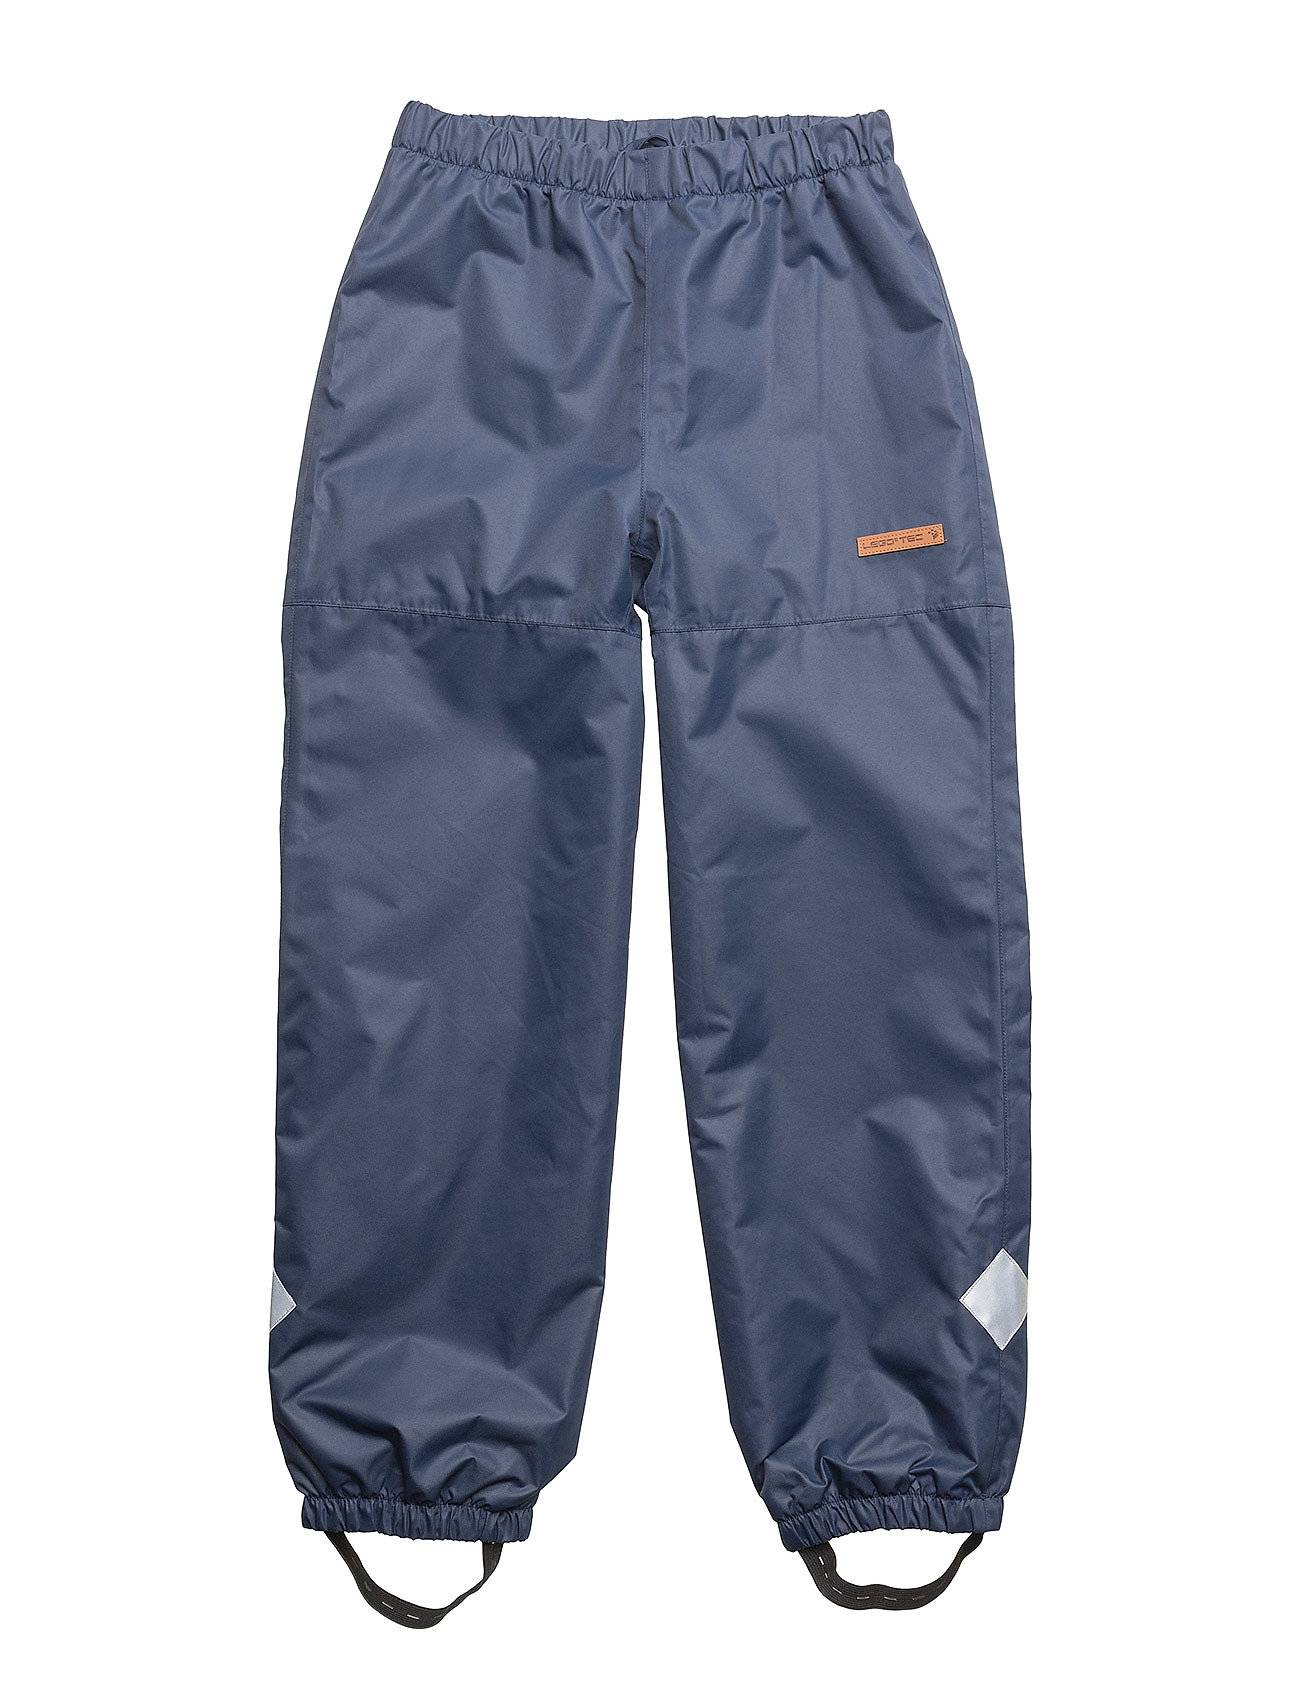 Lego Ping 222 - All Weather Pant